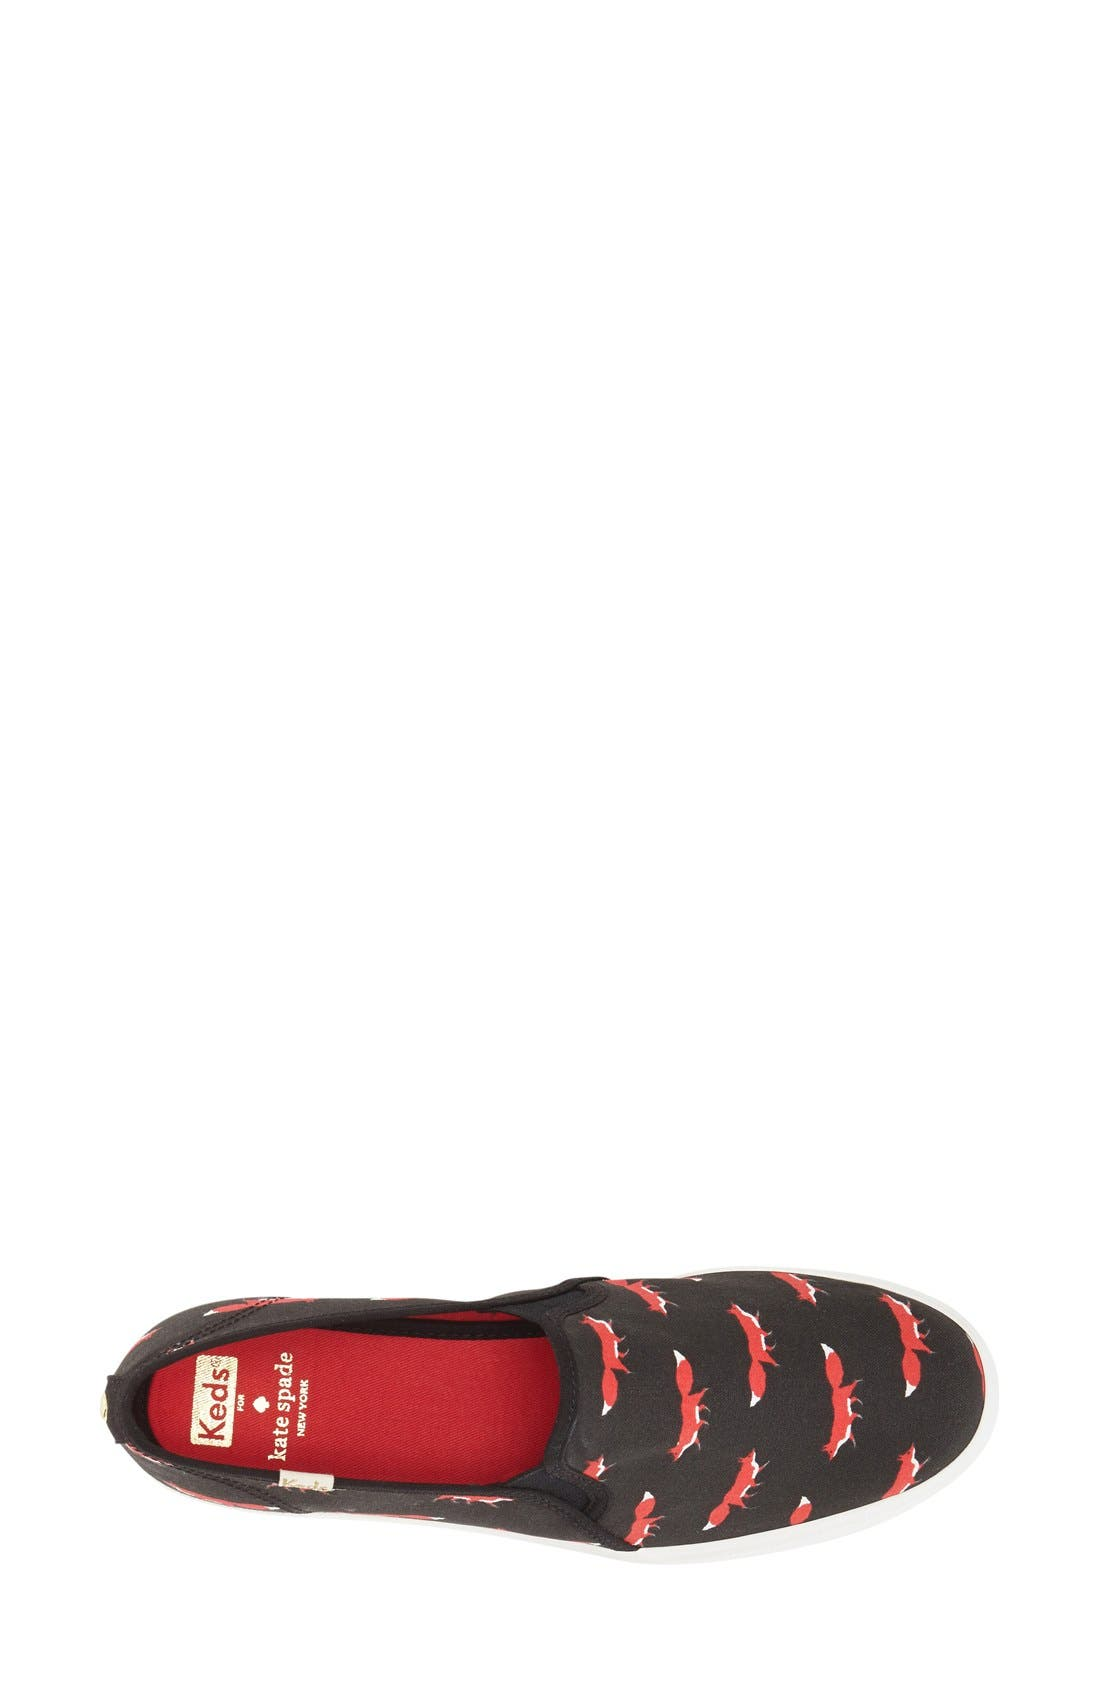 Alternate Image 3  - Keds® for kate spade new york 'decker' fox print sneaker (Women)